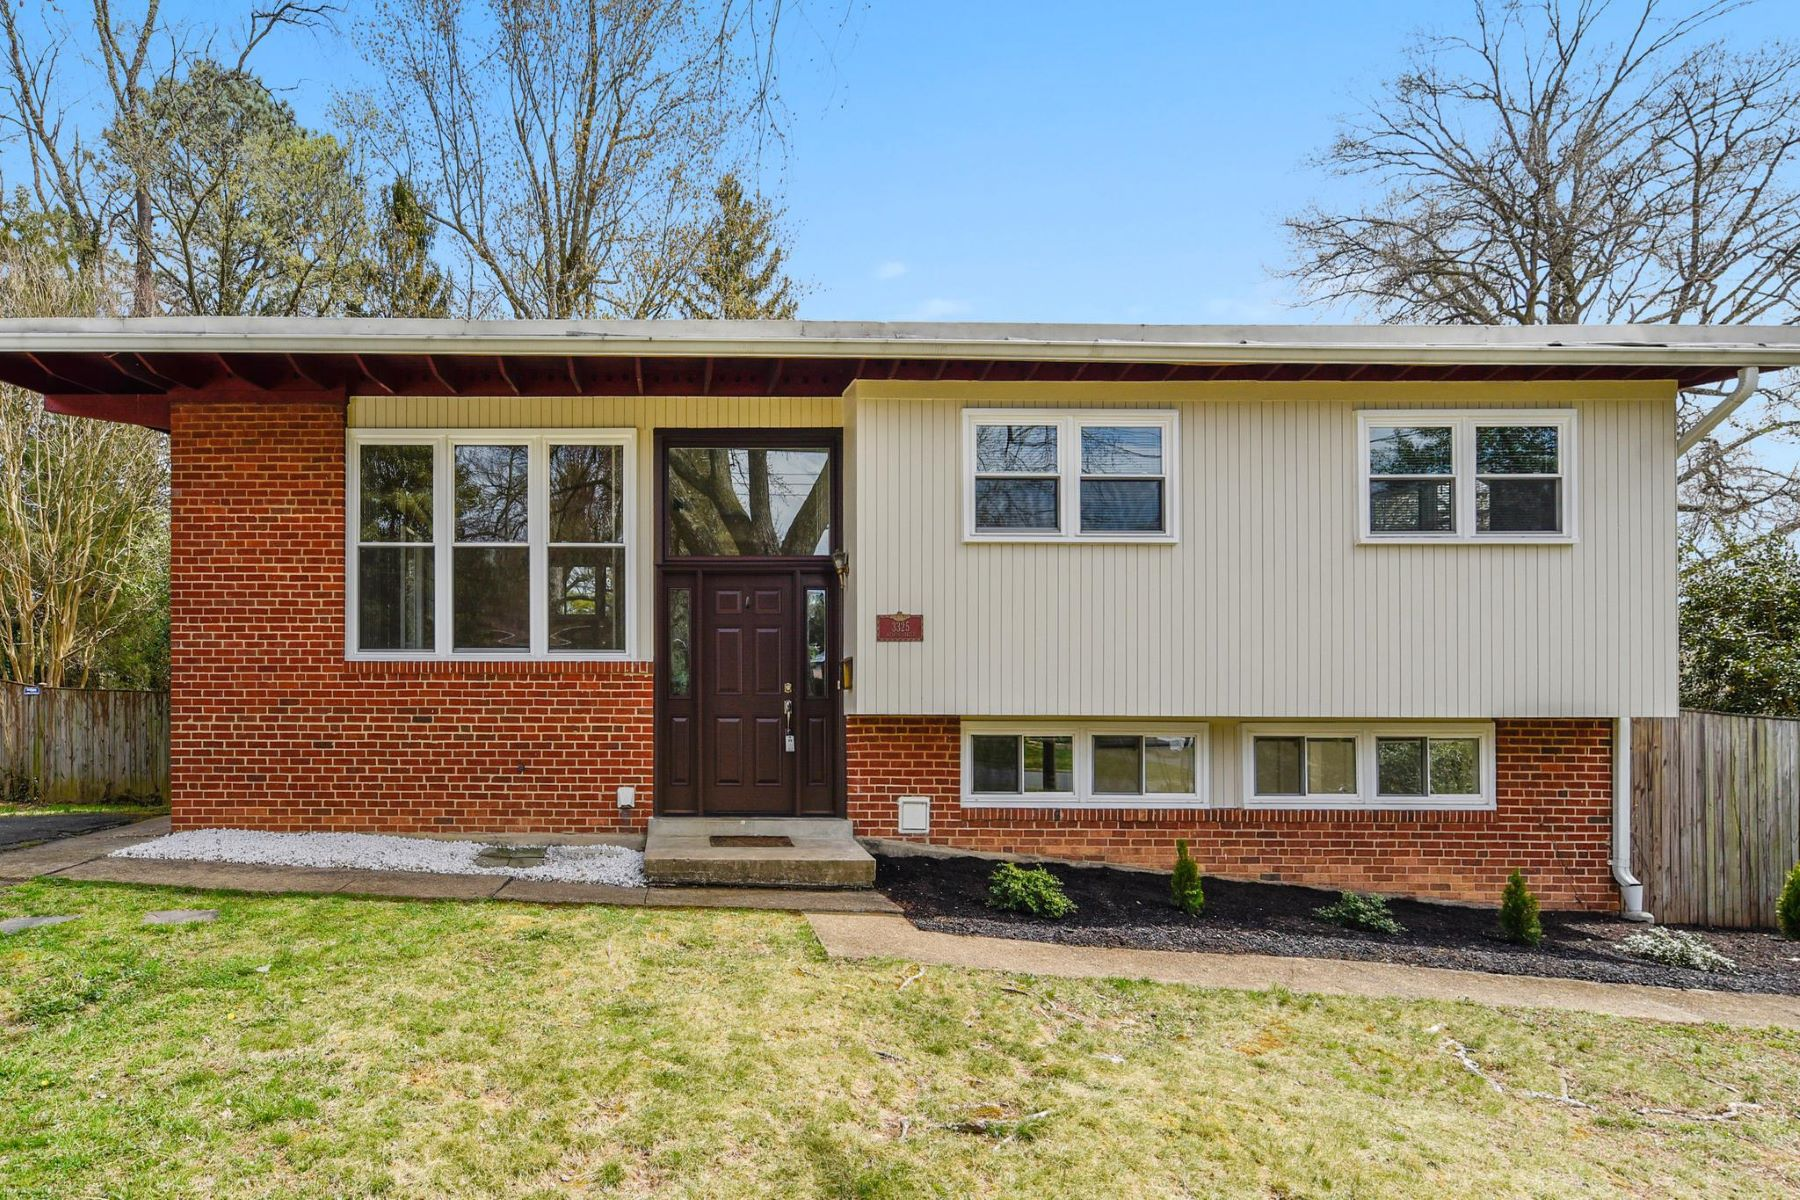 Single Family Home for Sale at 3325 Nevius St 3325 Nevius St Falls Church, Virginia 22041 United States